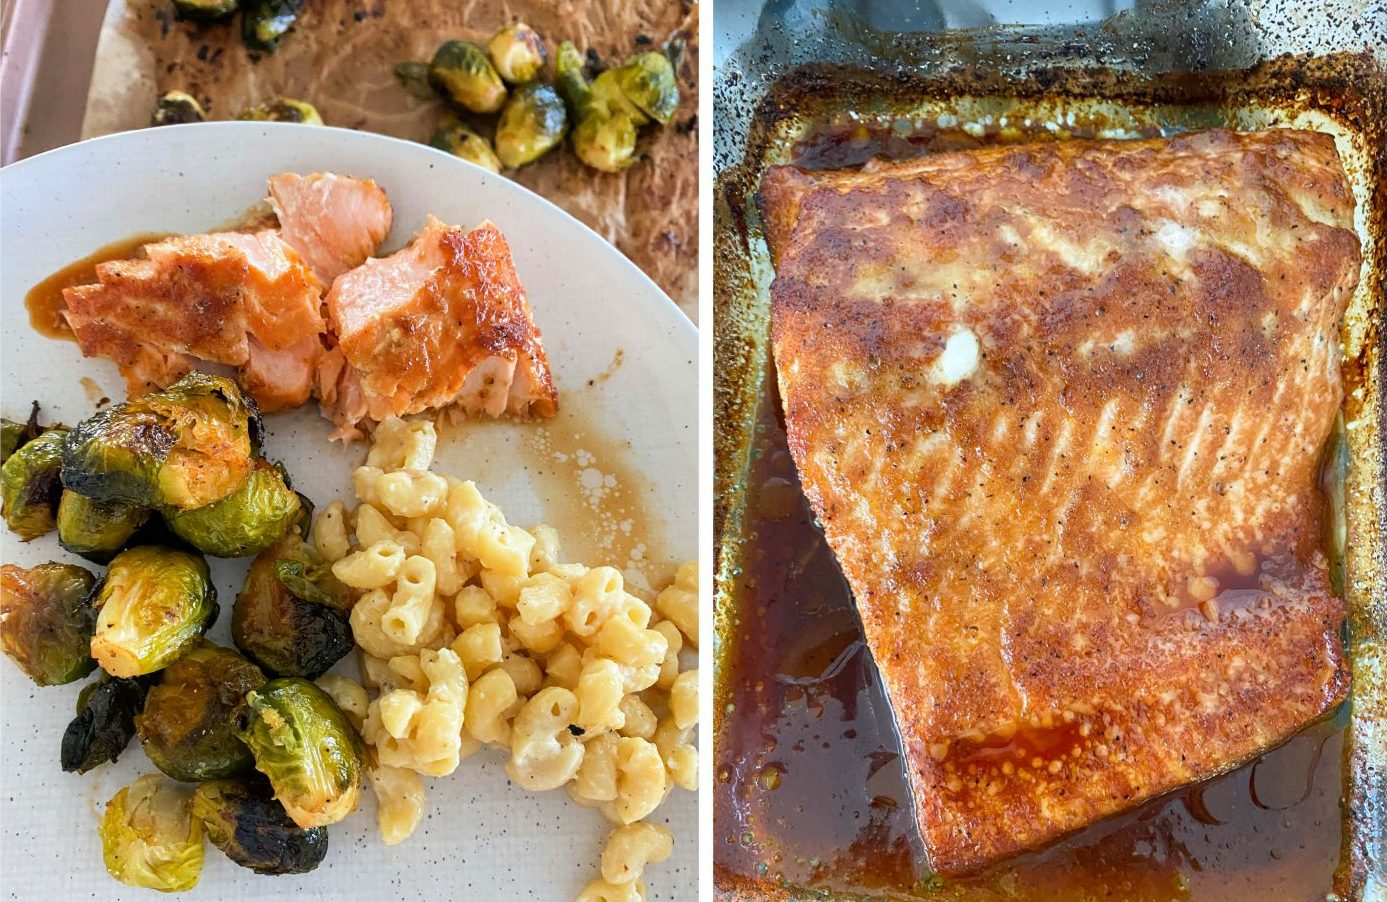 banza macaroni, Mac and cheese, salmon, tiktok Brussels sprouts, salmon, roasted, baked, dinner